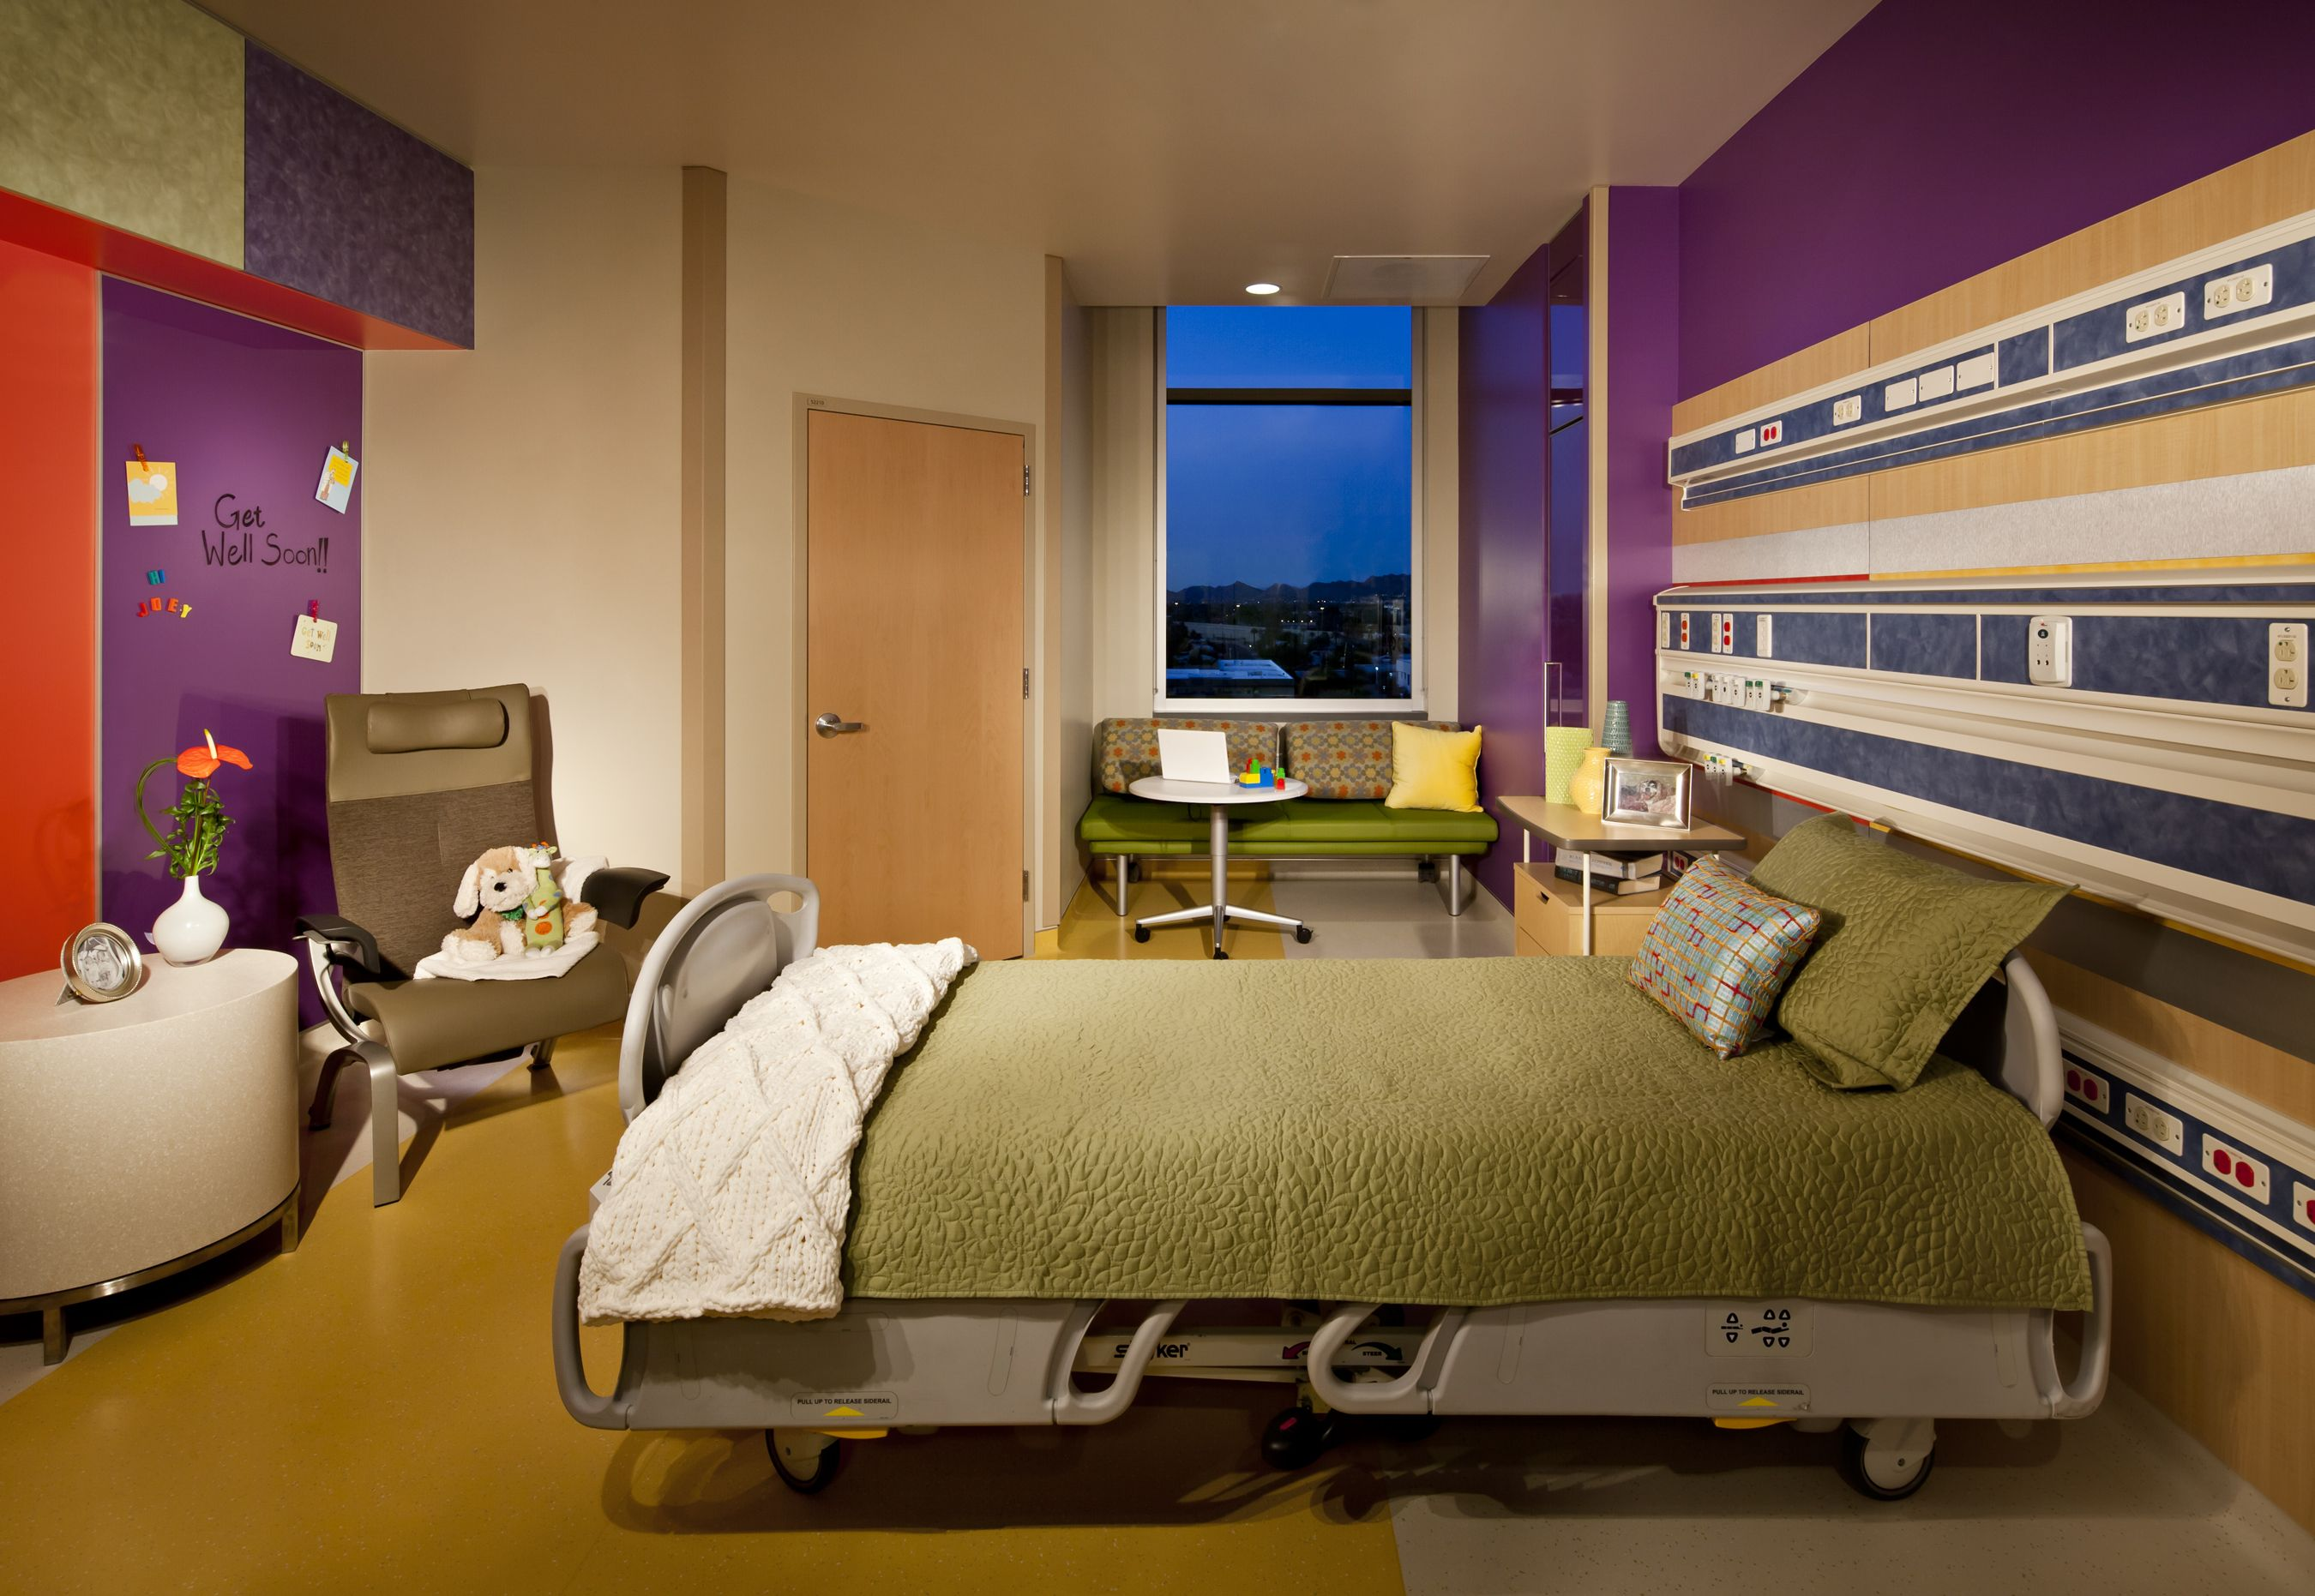 Image 13 of 28 from gallery of Phoenix Children's Hospital / HKS  Architects. Courtesy of HKS Architects